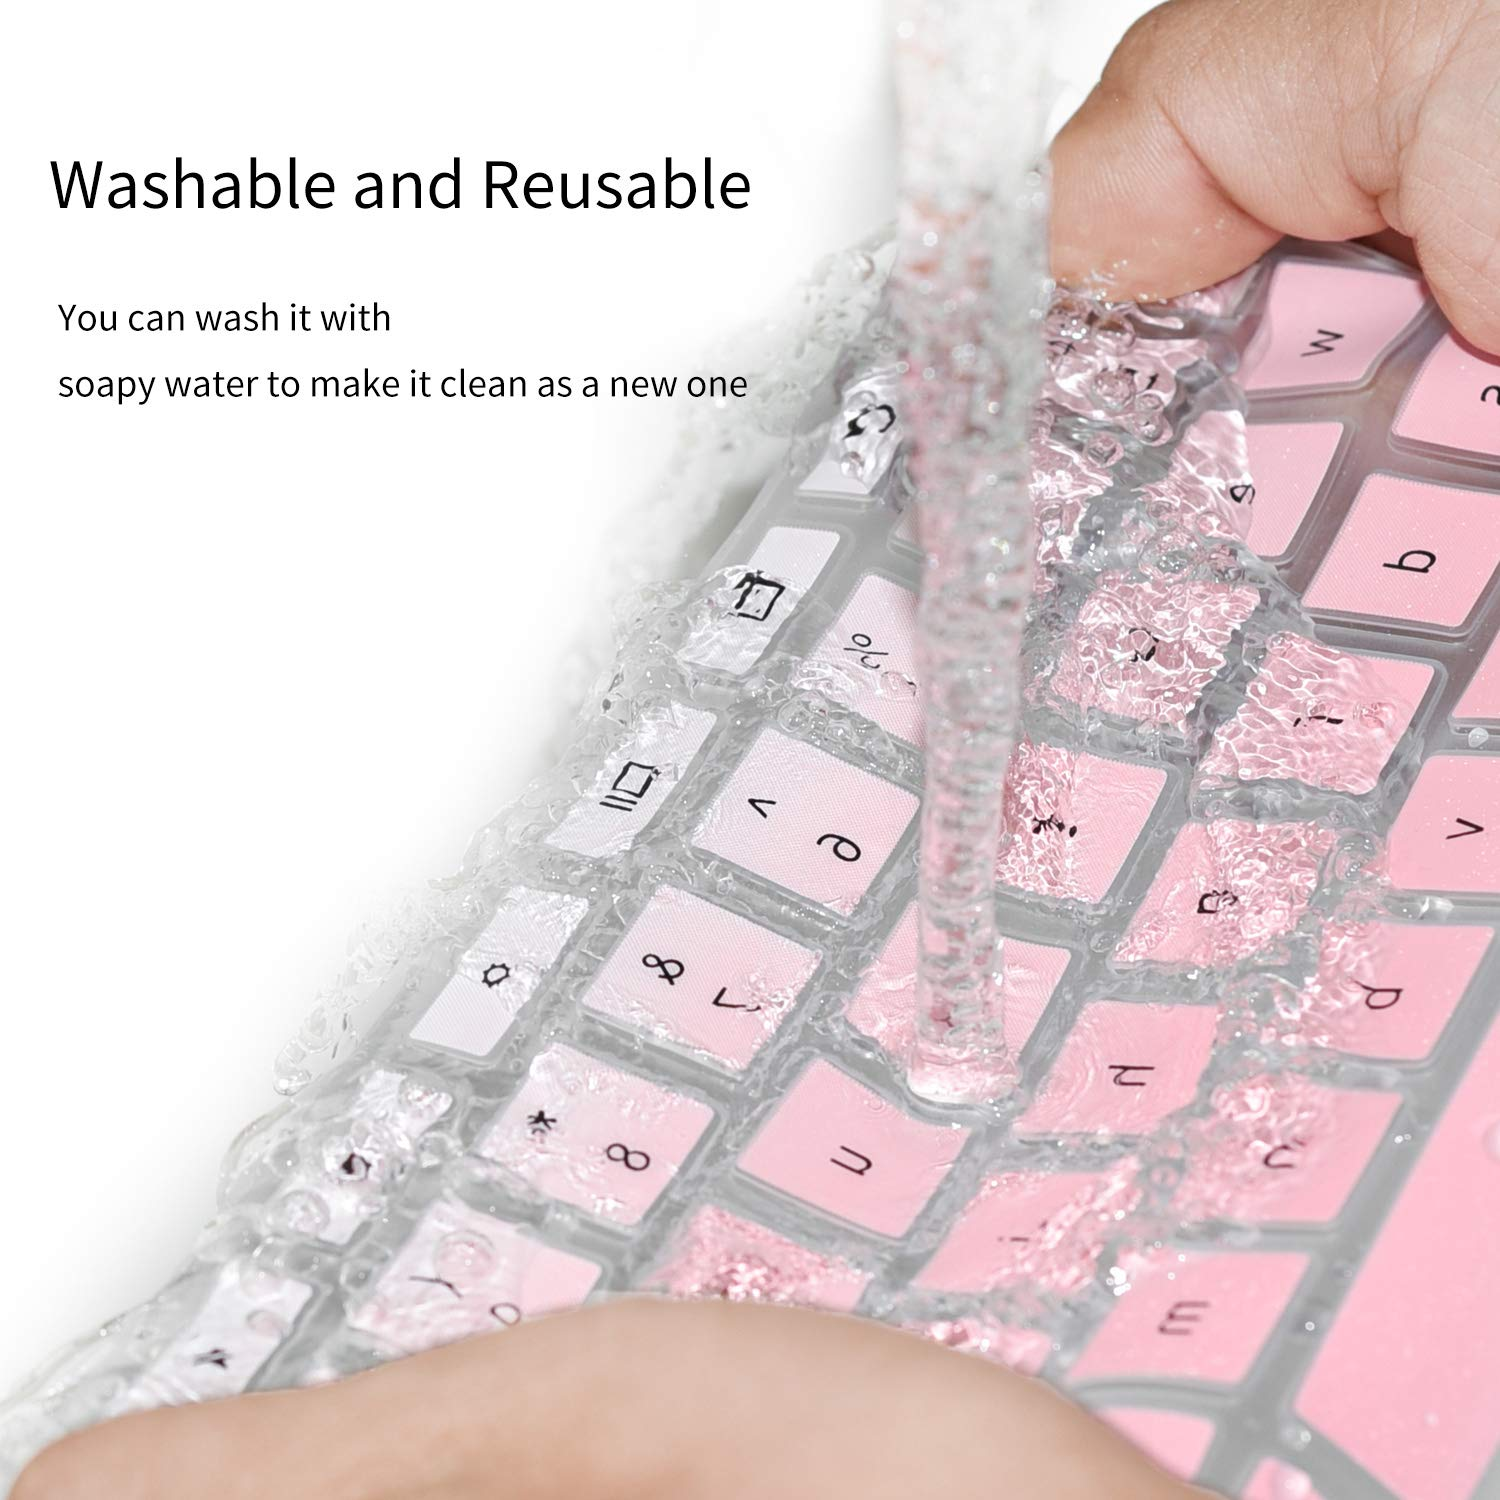 Ombre Pink CaseBuy Dell Latitude Keyboard Cover Skin 14 inch for Dell Latitude 3340 E3340 5480 5490 E5490 5491 E5491 E5450 E5470 E7450 E7470 7480 E7480 7490 Keyboard Protector Skin with Pointing